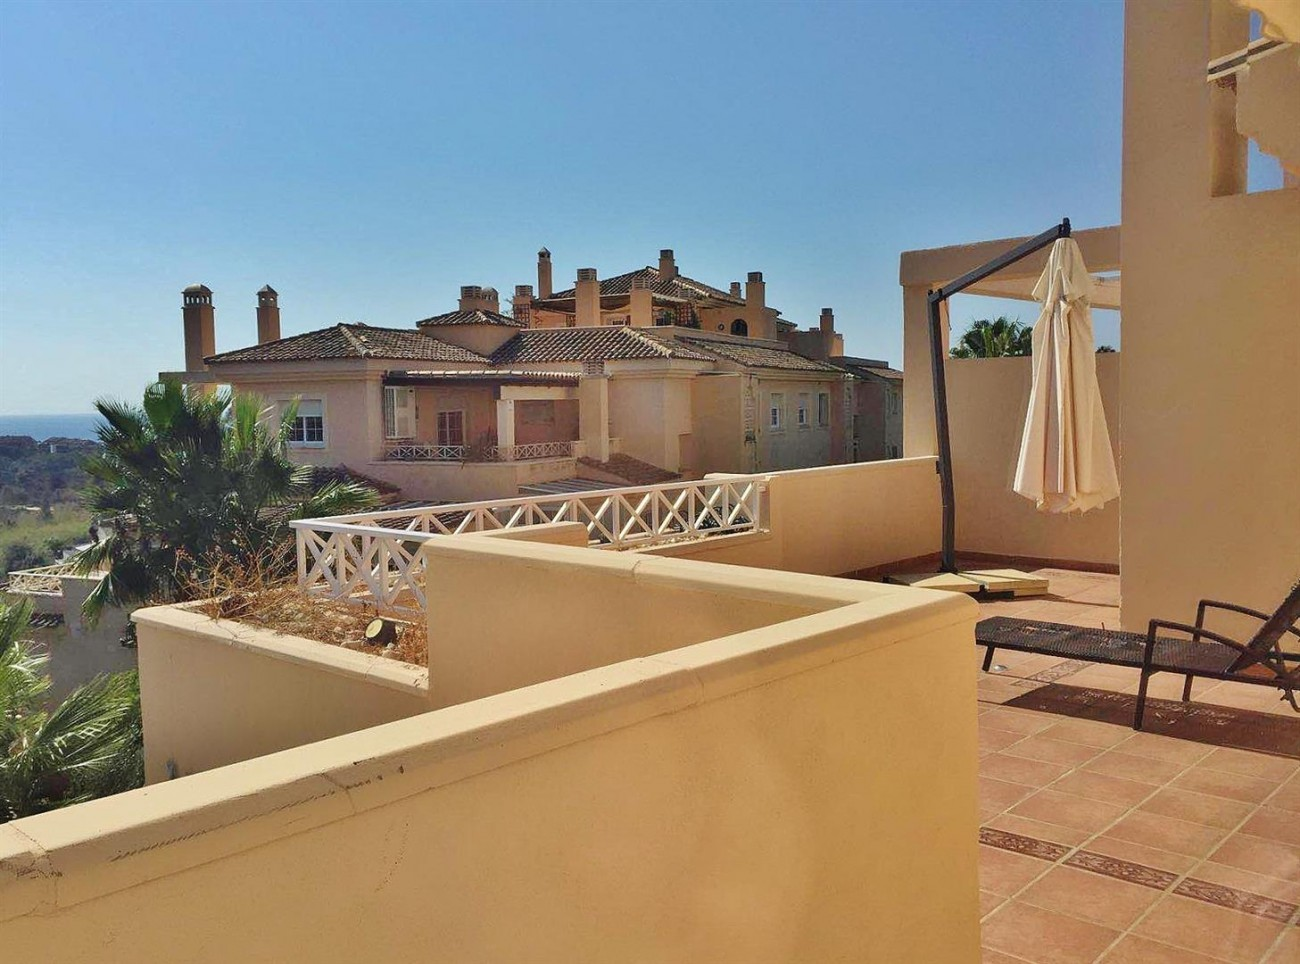 3 Bedrooms apartment for rent East Marbella (11) (Large)